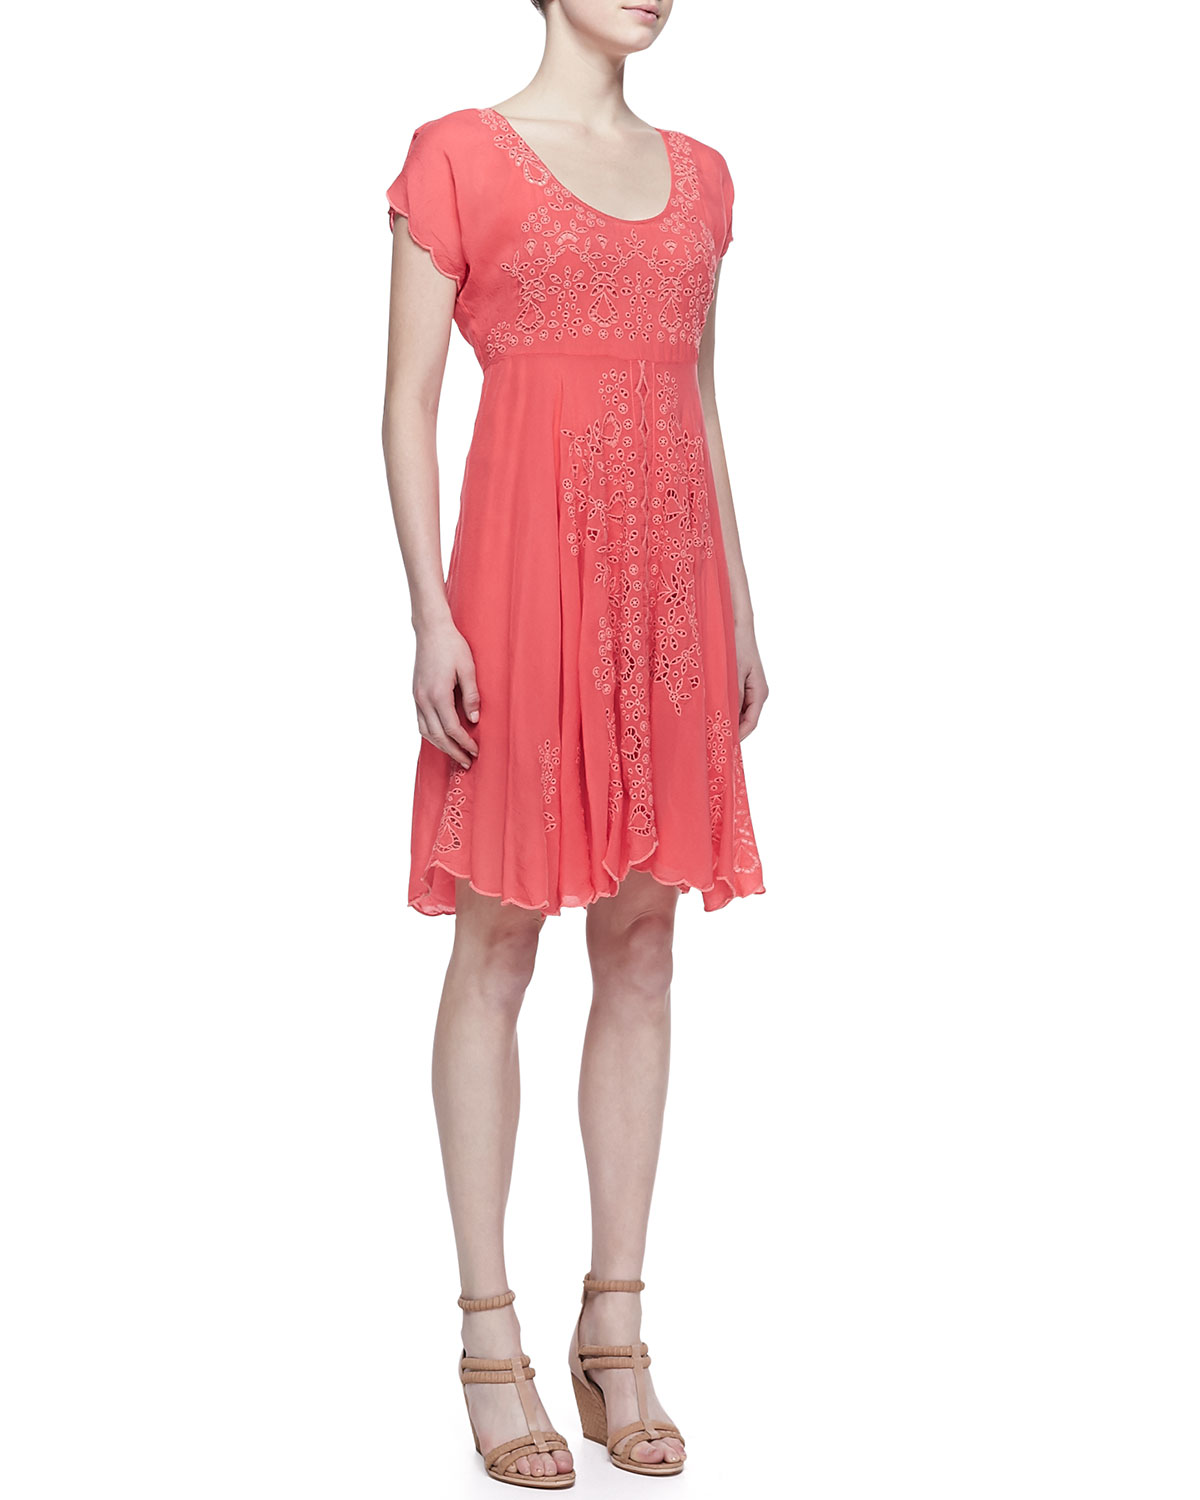 Lucy Eyelet Cap Sleeve Dress, Womens   Johnny Was Collection   Papaya (1X